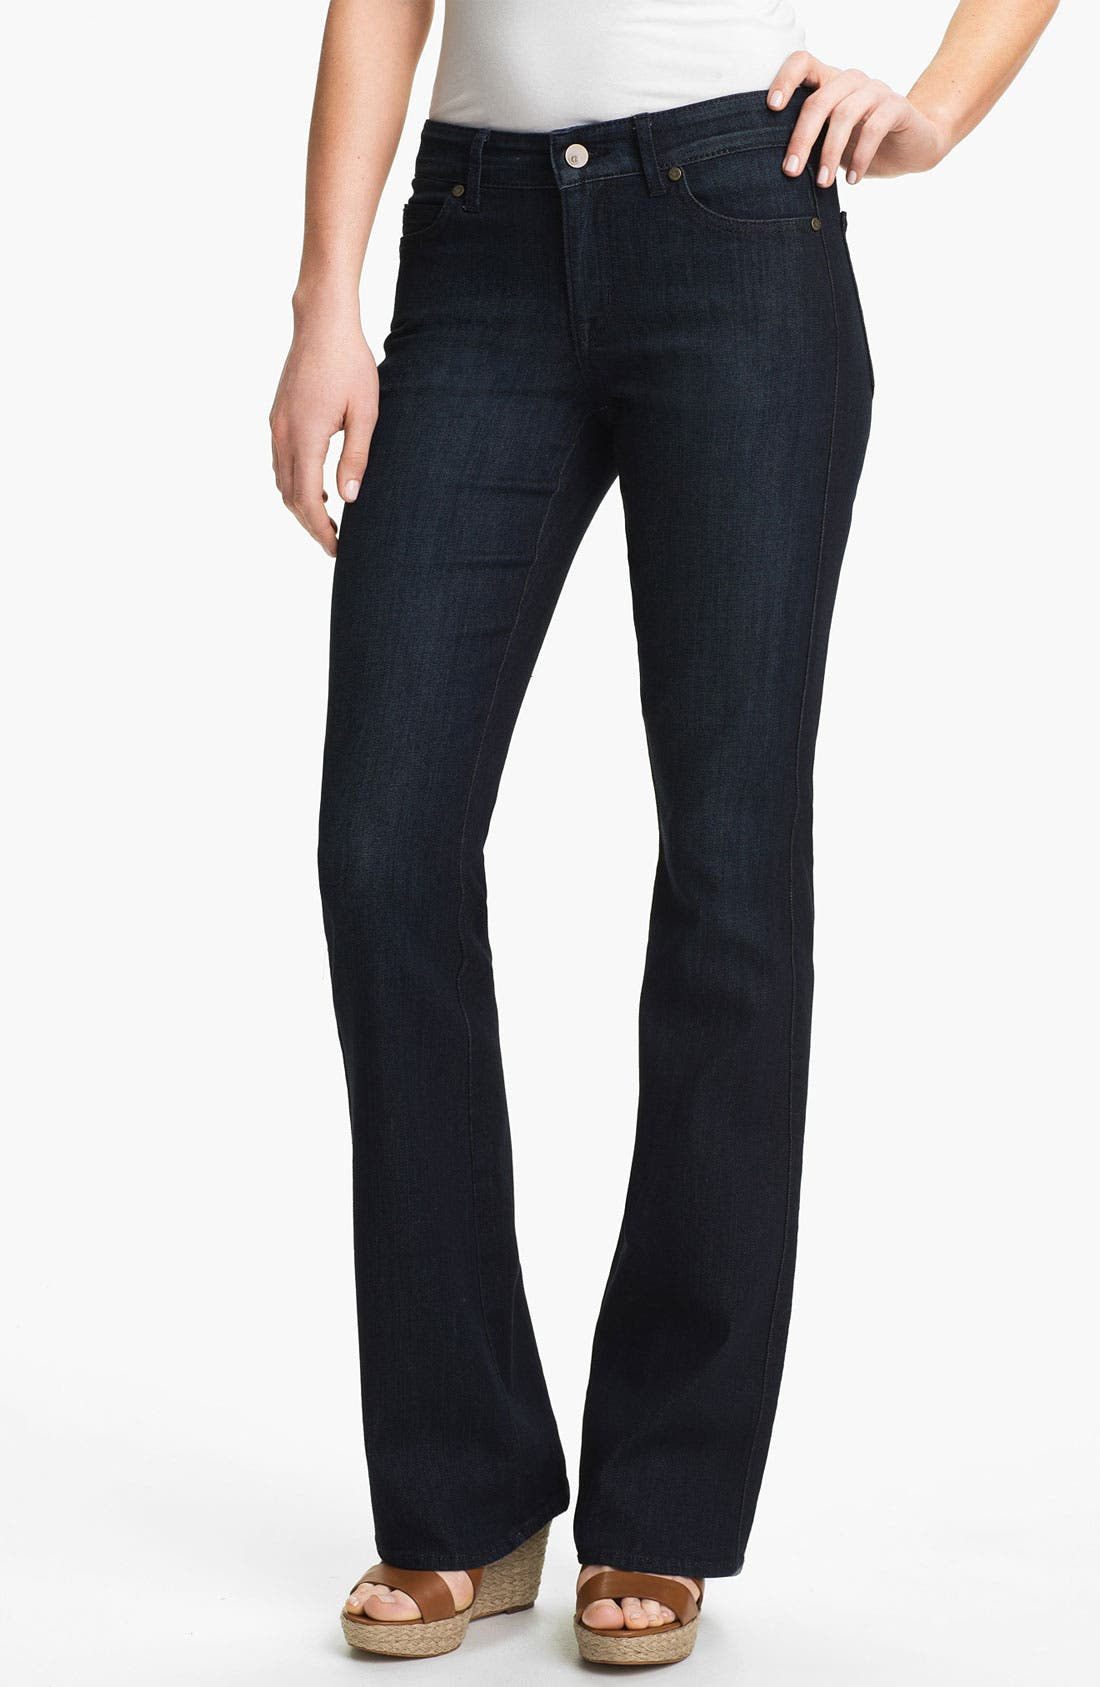 Alternate Image 1 Selected - CJ by Cookie Johnson 'Grace' Bootcut Stretch Jeans